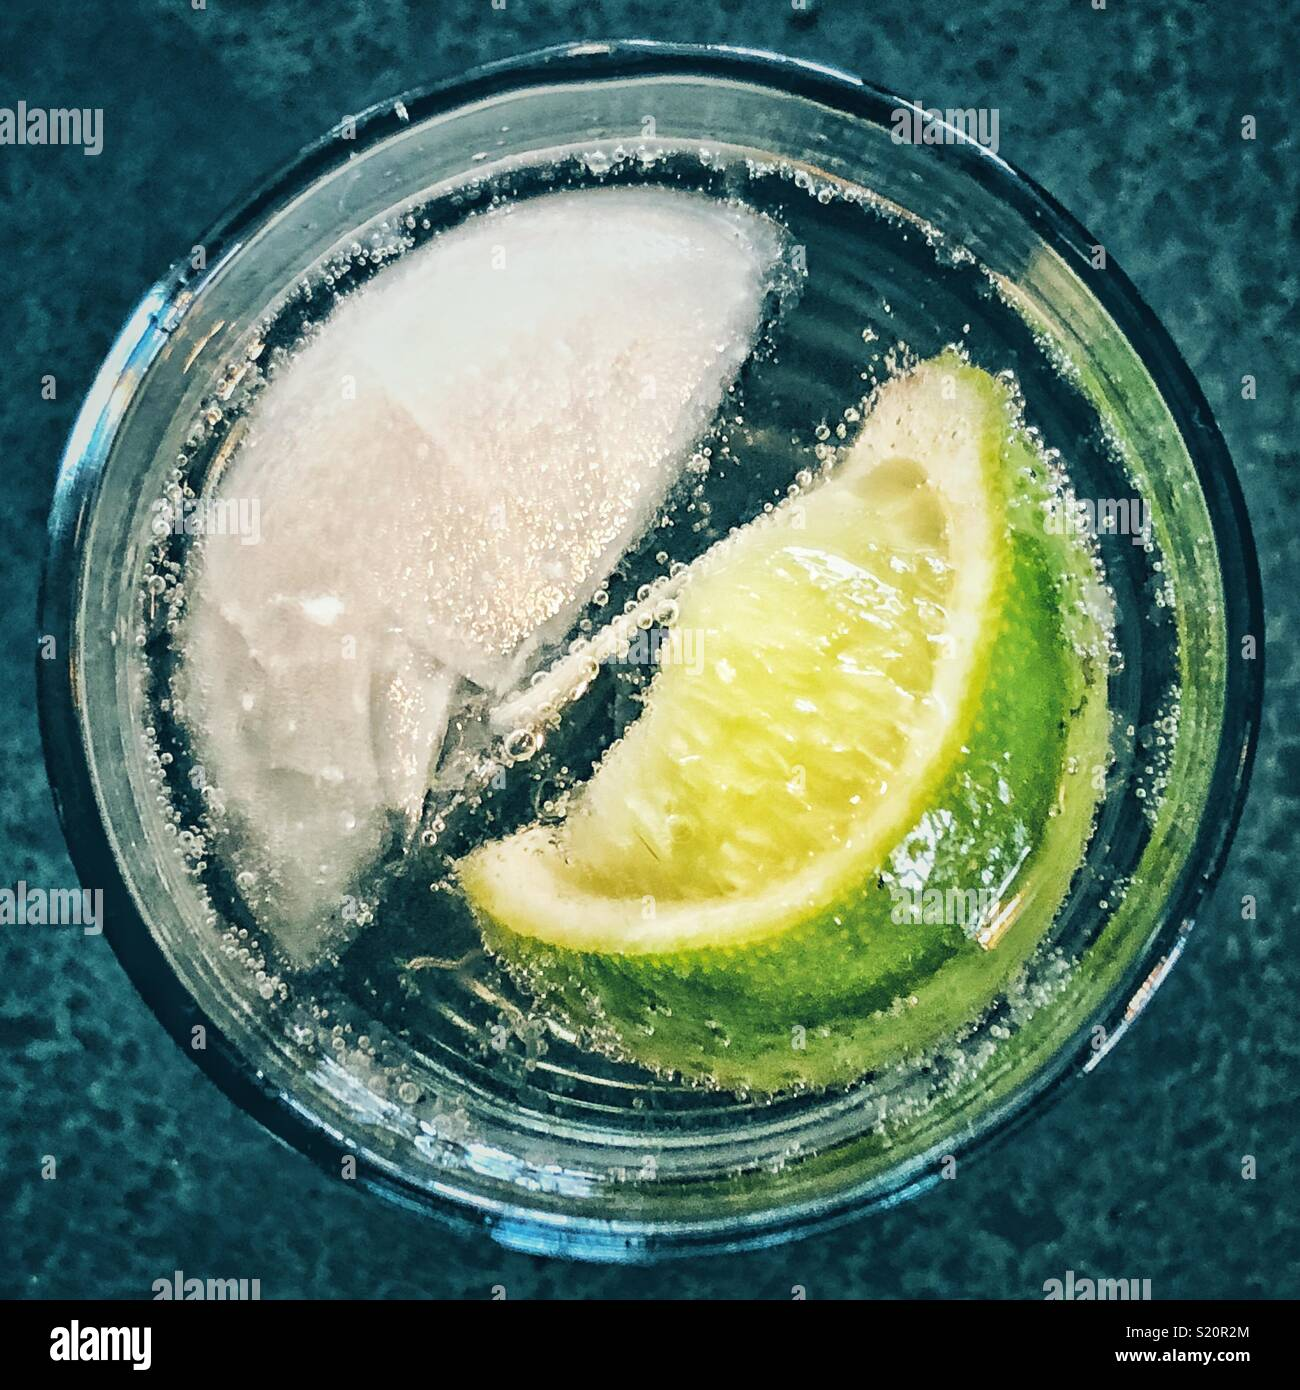 Top view of single ice cube and lime wedge in a glass of sparkling water - Stock Image